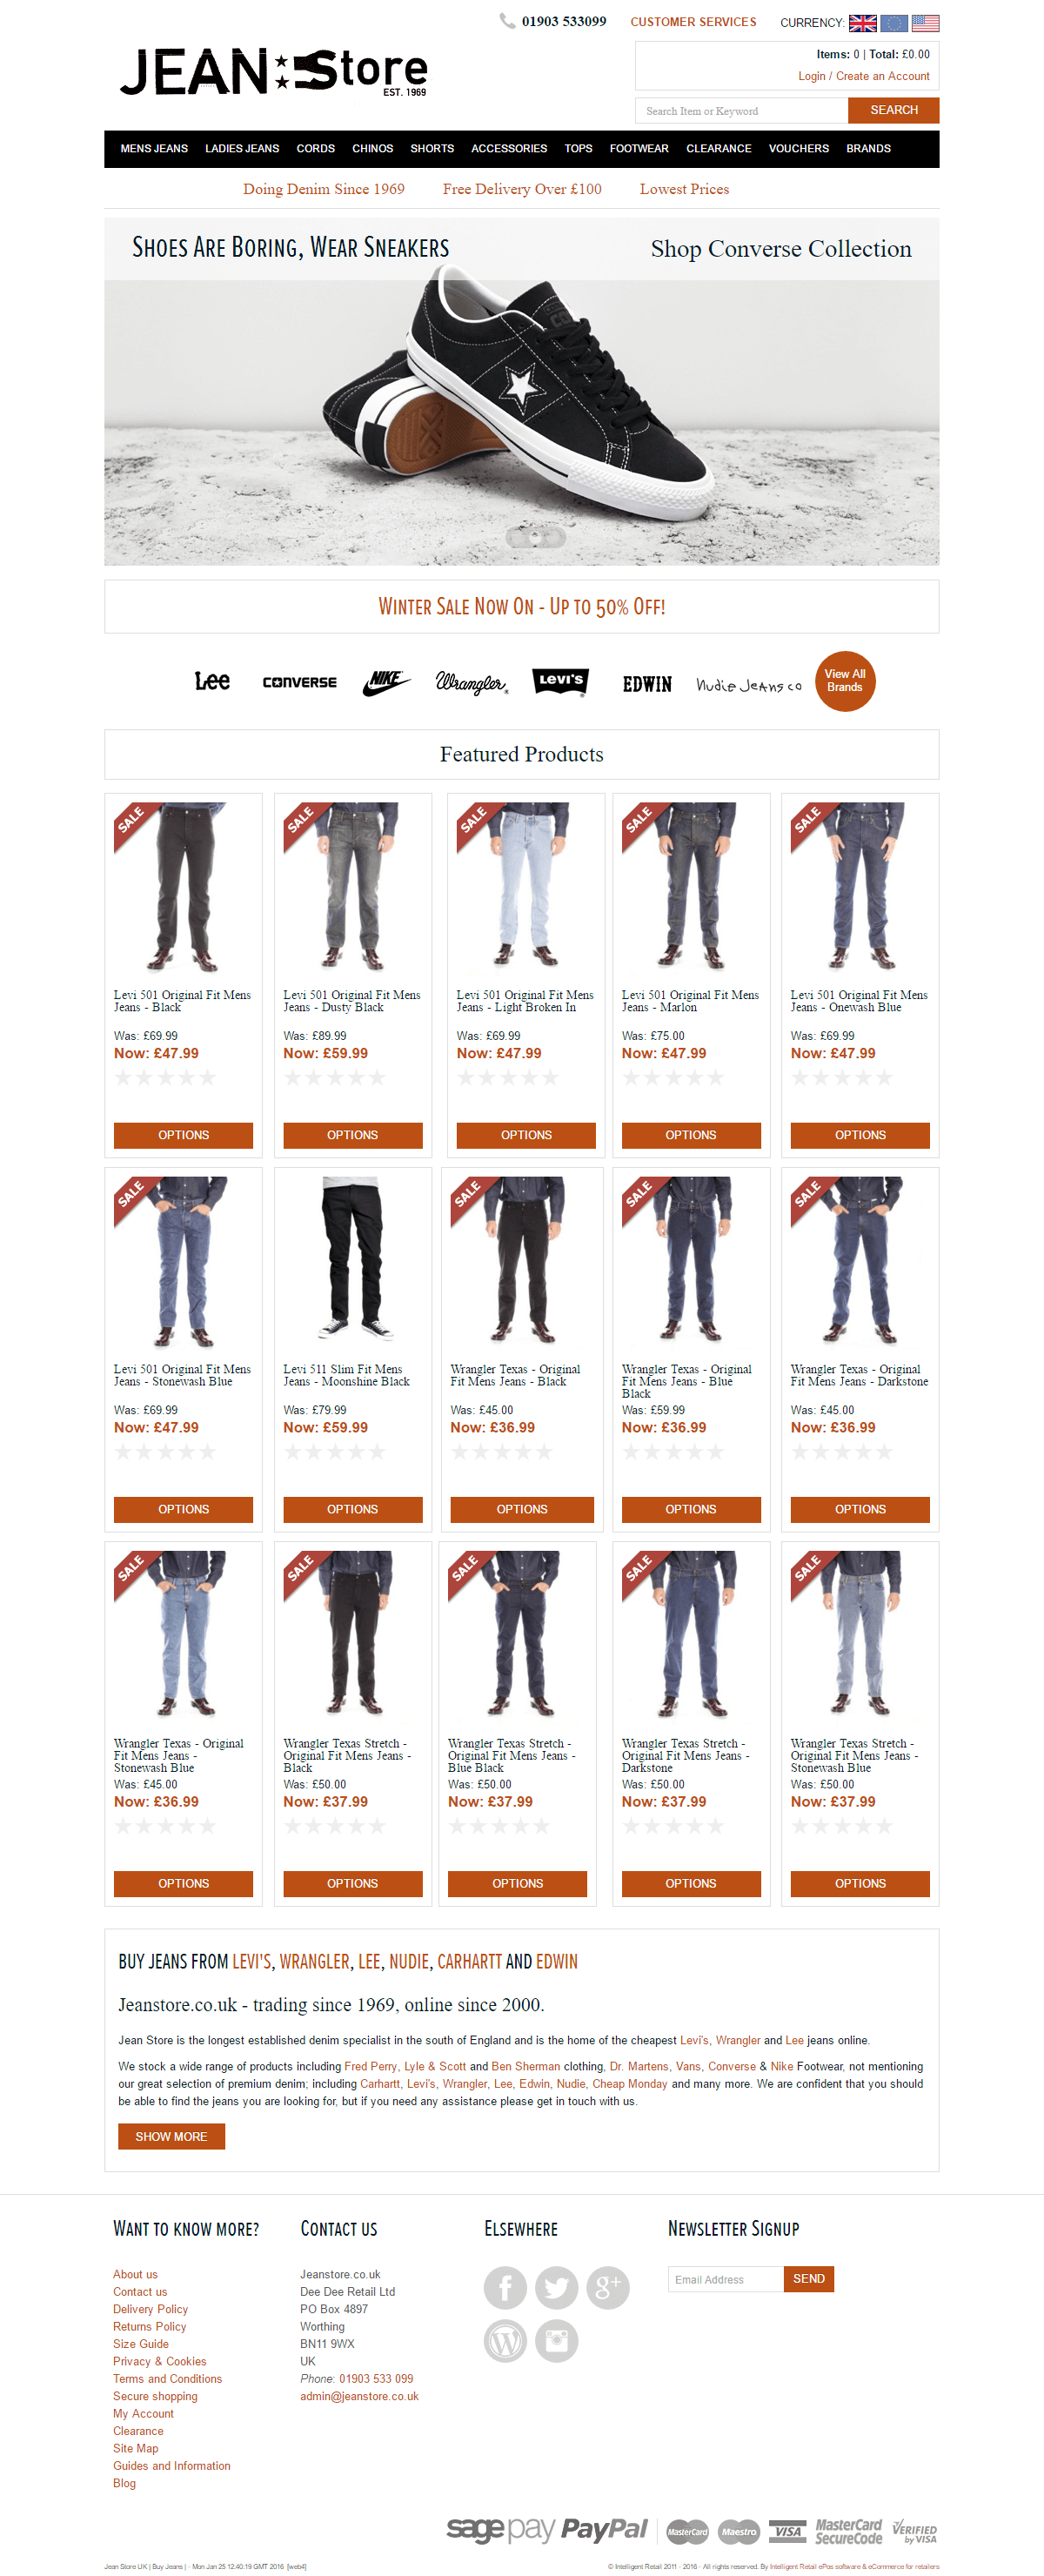 Jean Store - Home page